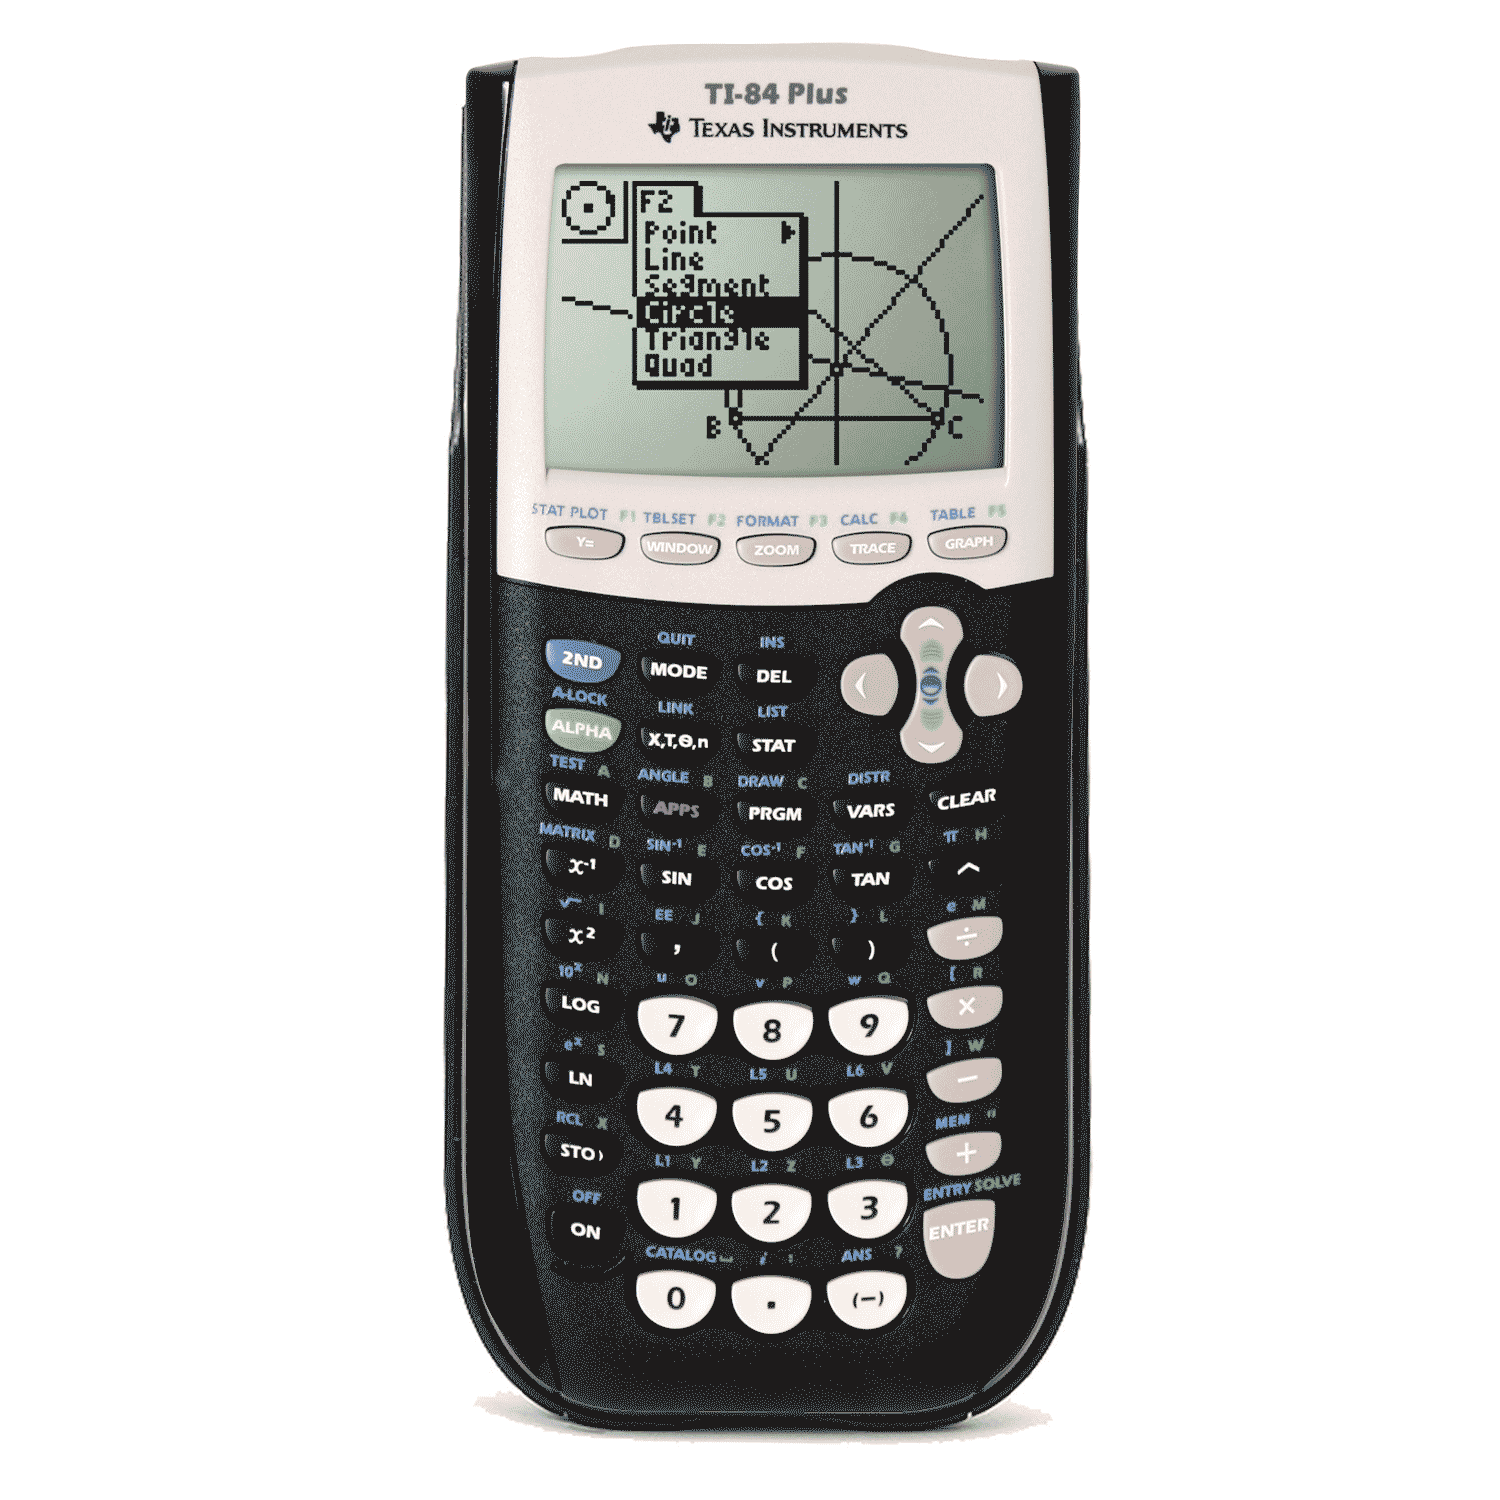 Ti 84 plus texas instruments or ti 84 silver edition.